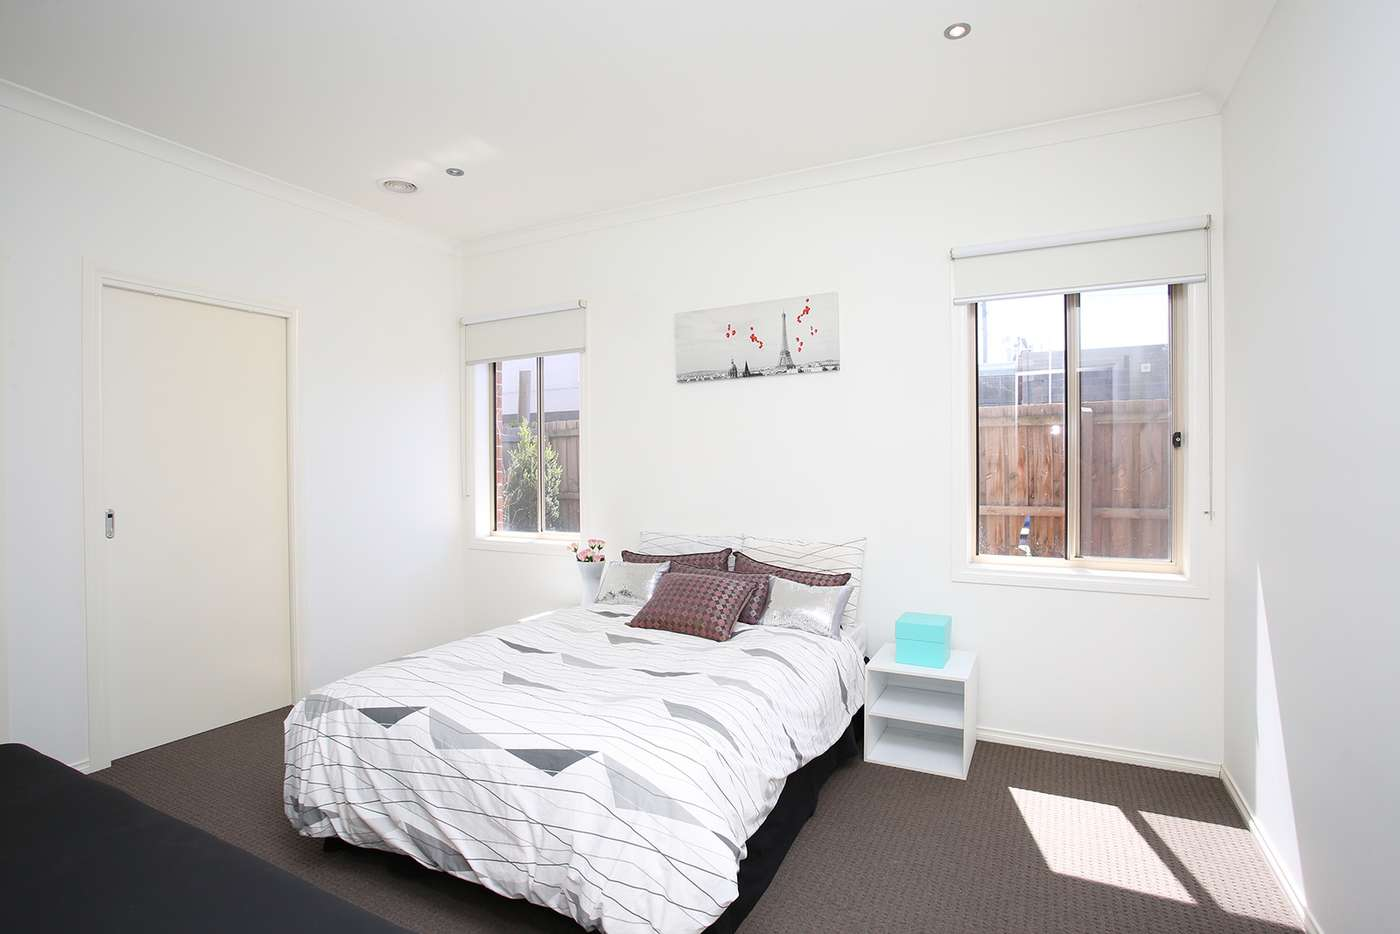 Seventh view of Homely apartment listing, 2/24 Dunlop Avenue, Ormond VIC 3204